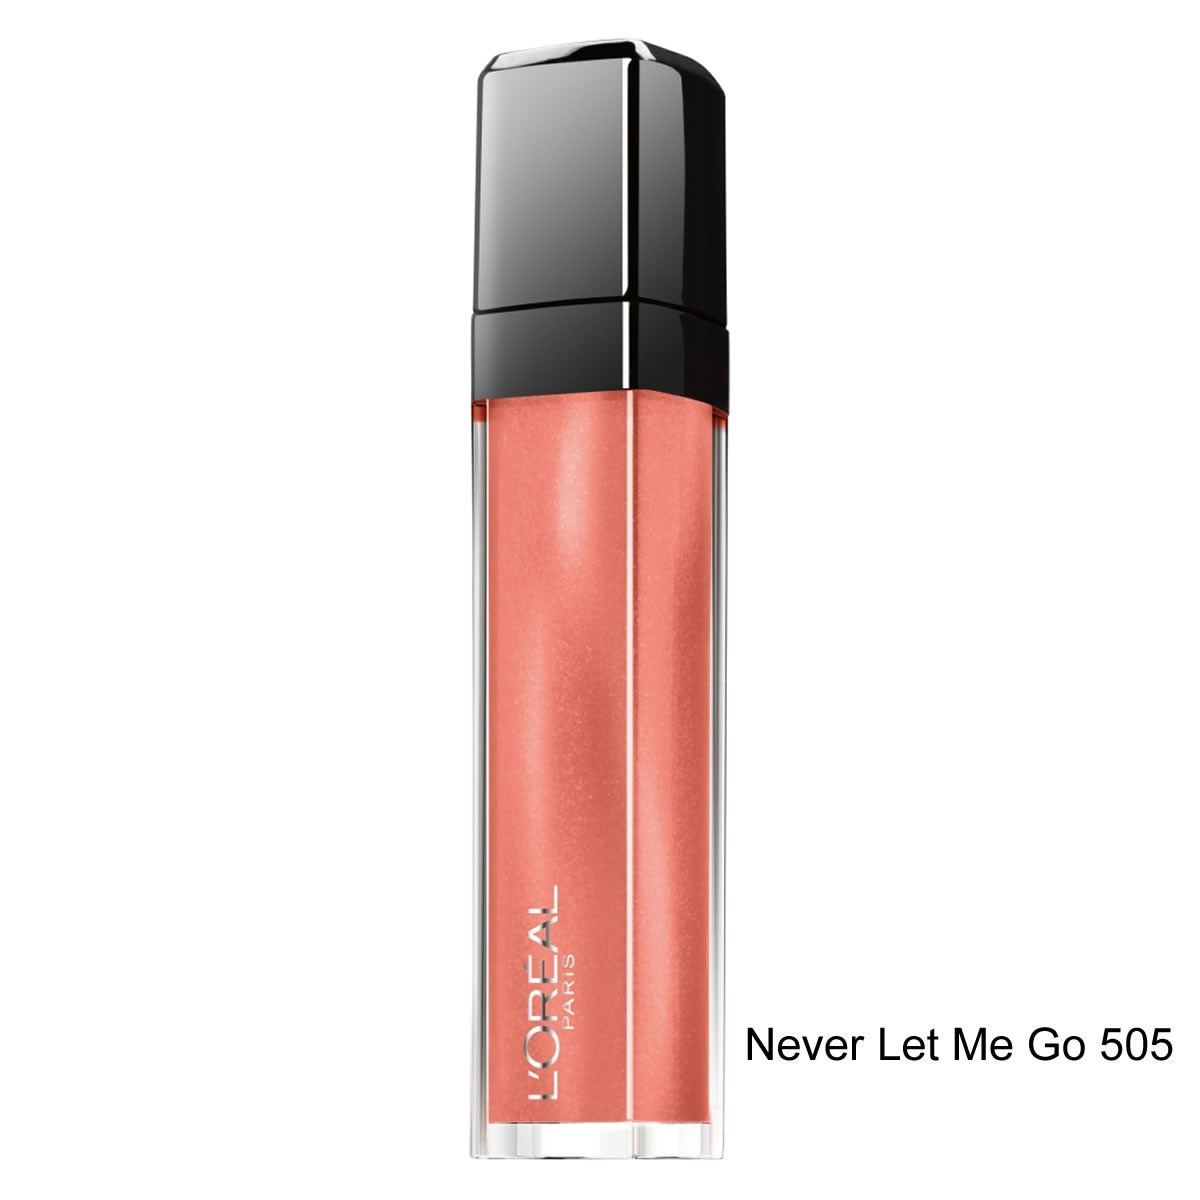 L'Oreal Paris Le Gloss Infallible Gloss